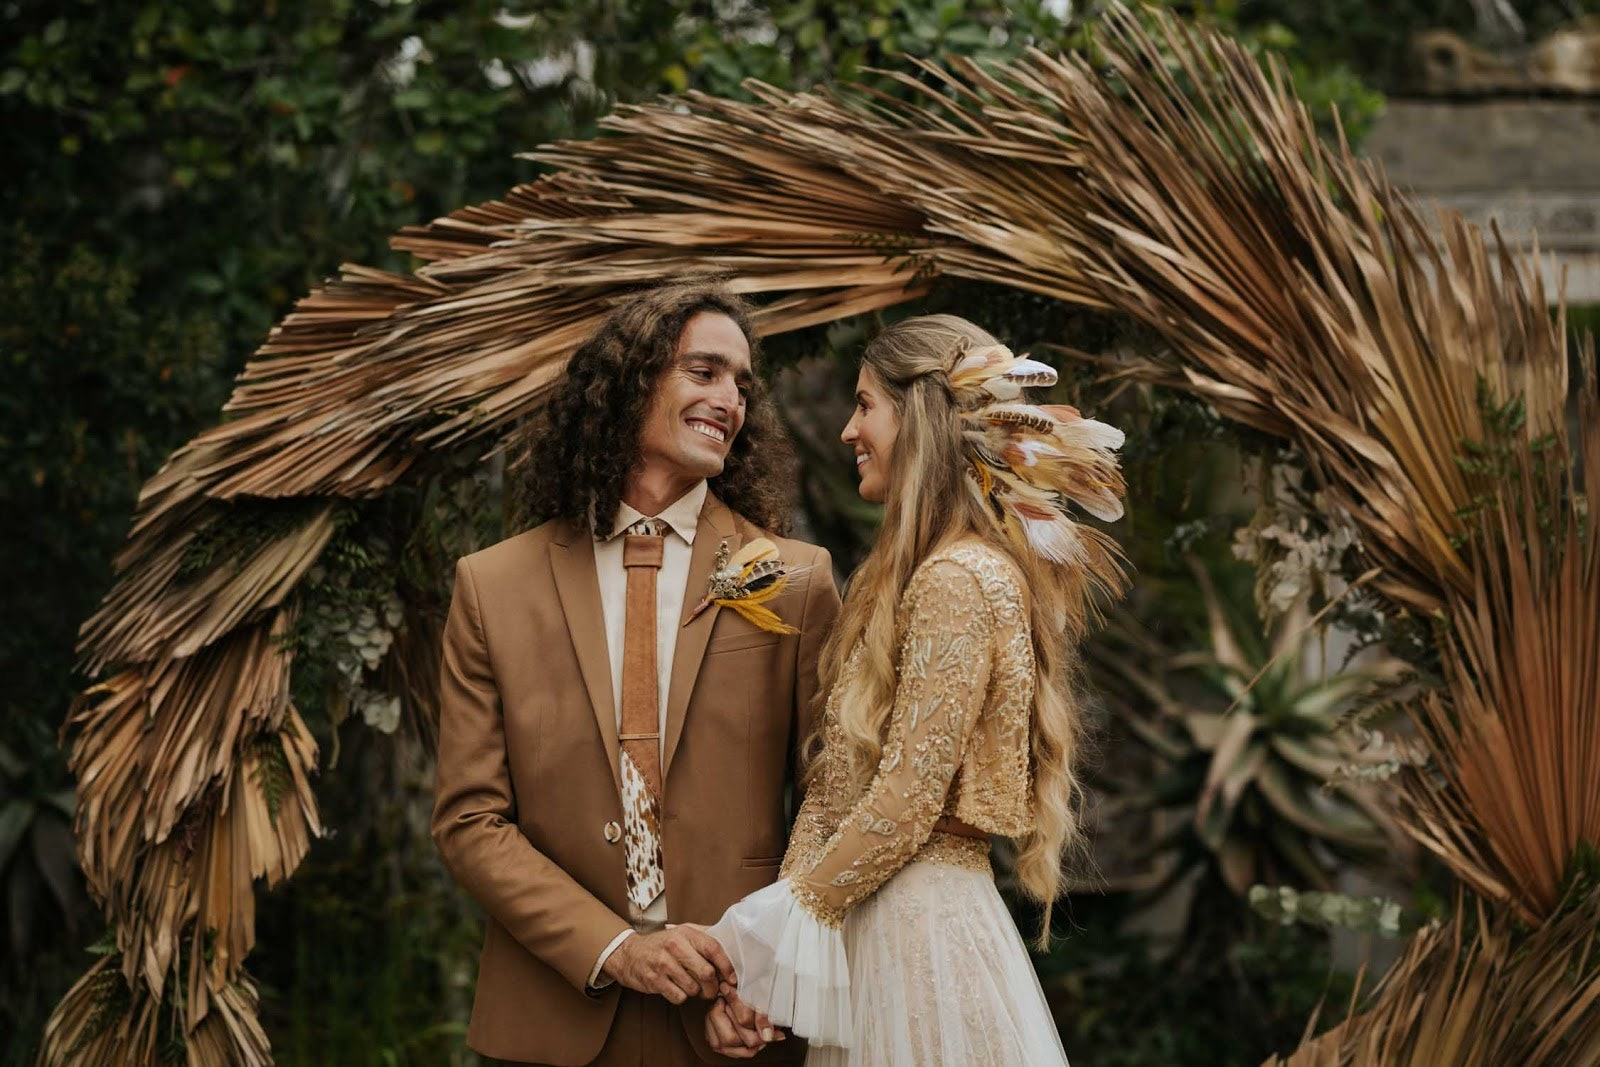 Bride and groom holding hands standing in front of a dried palm frond arbour.